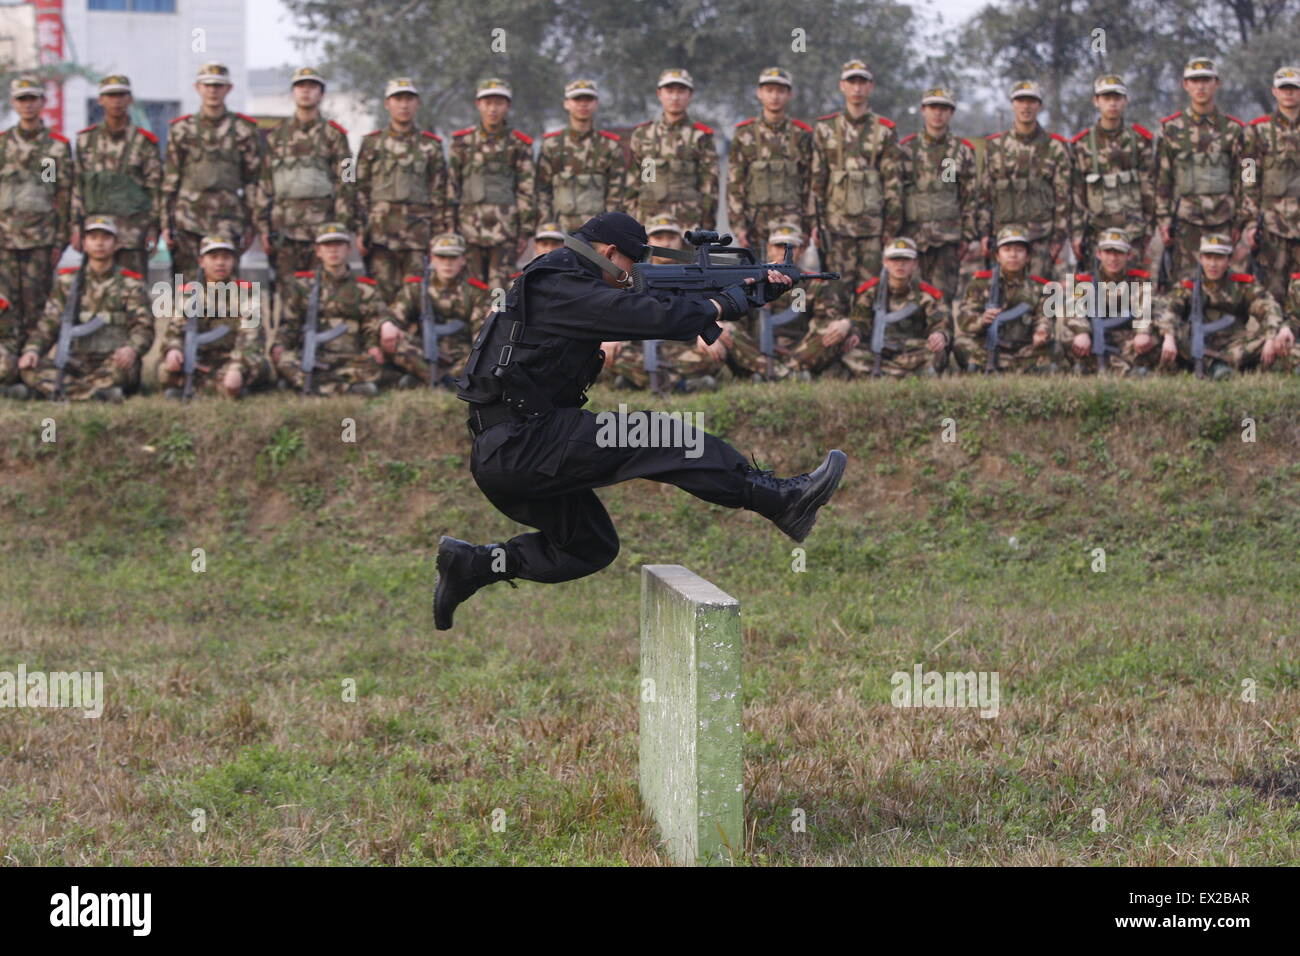 A paramilitary policeman demonstrates shooting while stepping over barriers to recruits during a training session - Stock Image